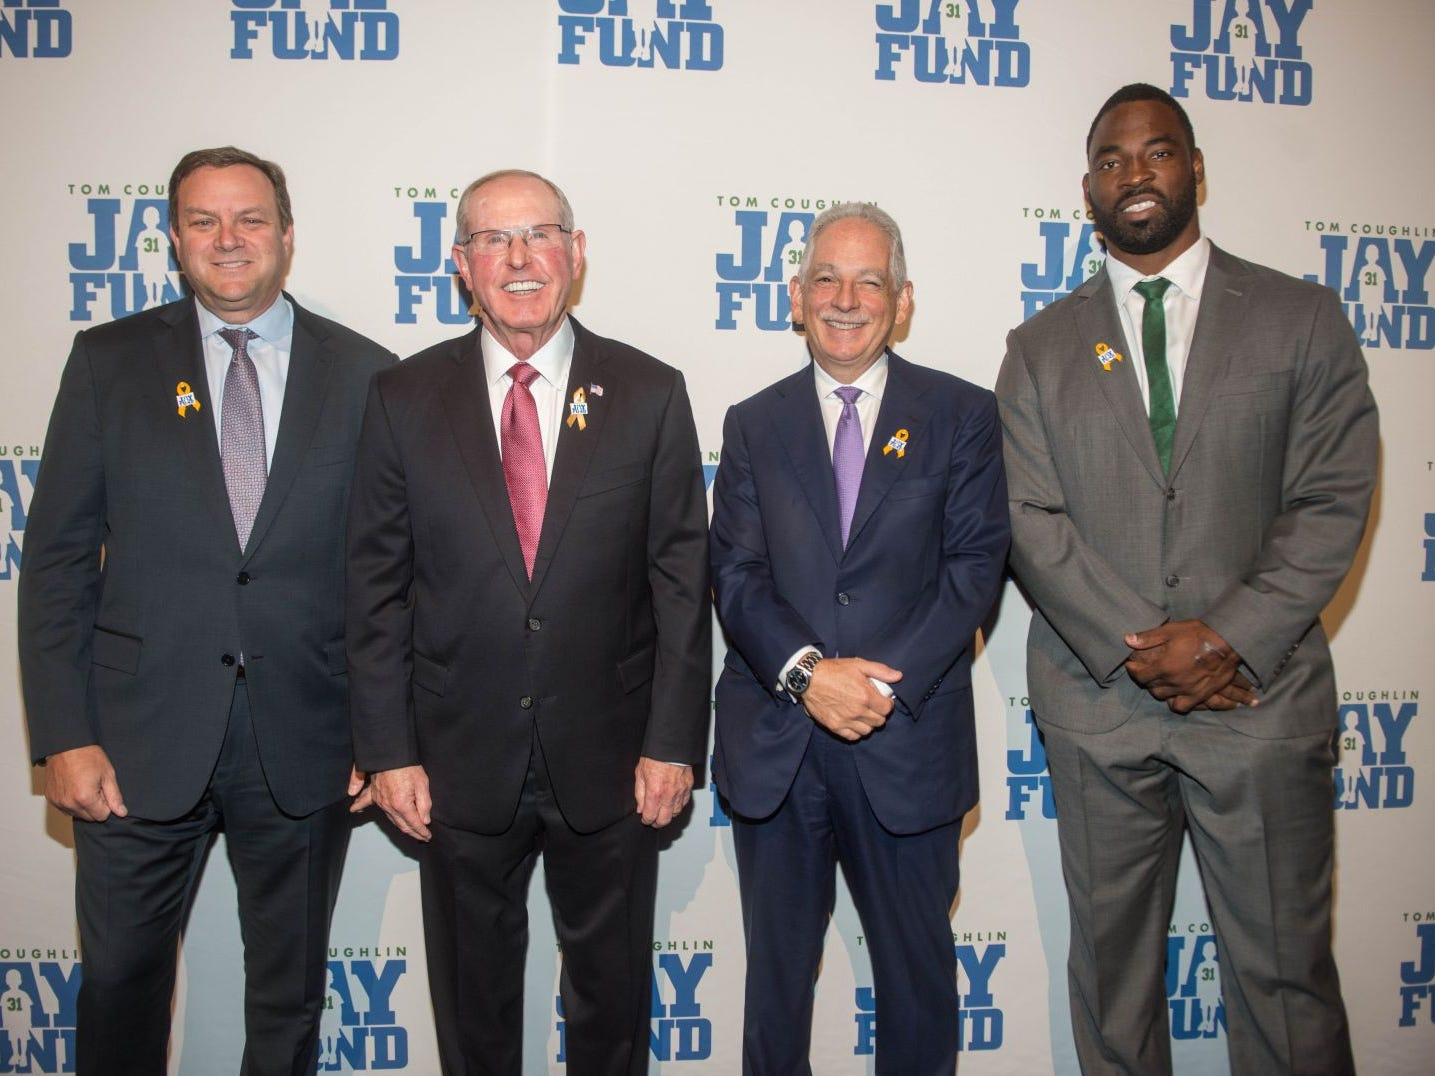 Mark Lazarus, Tom Coughlin, Dr. Steven J. Corwin and Justin Tuck. The 14th annual Jay Fund Champions for Children Gala was held at Cipriani 42nd Street. 09/21/2018